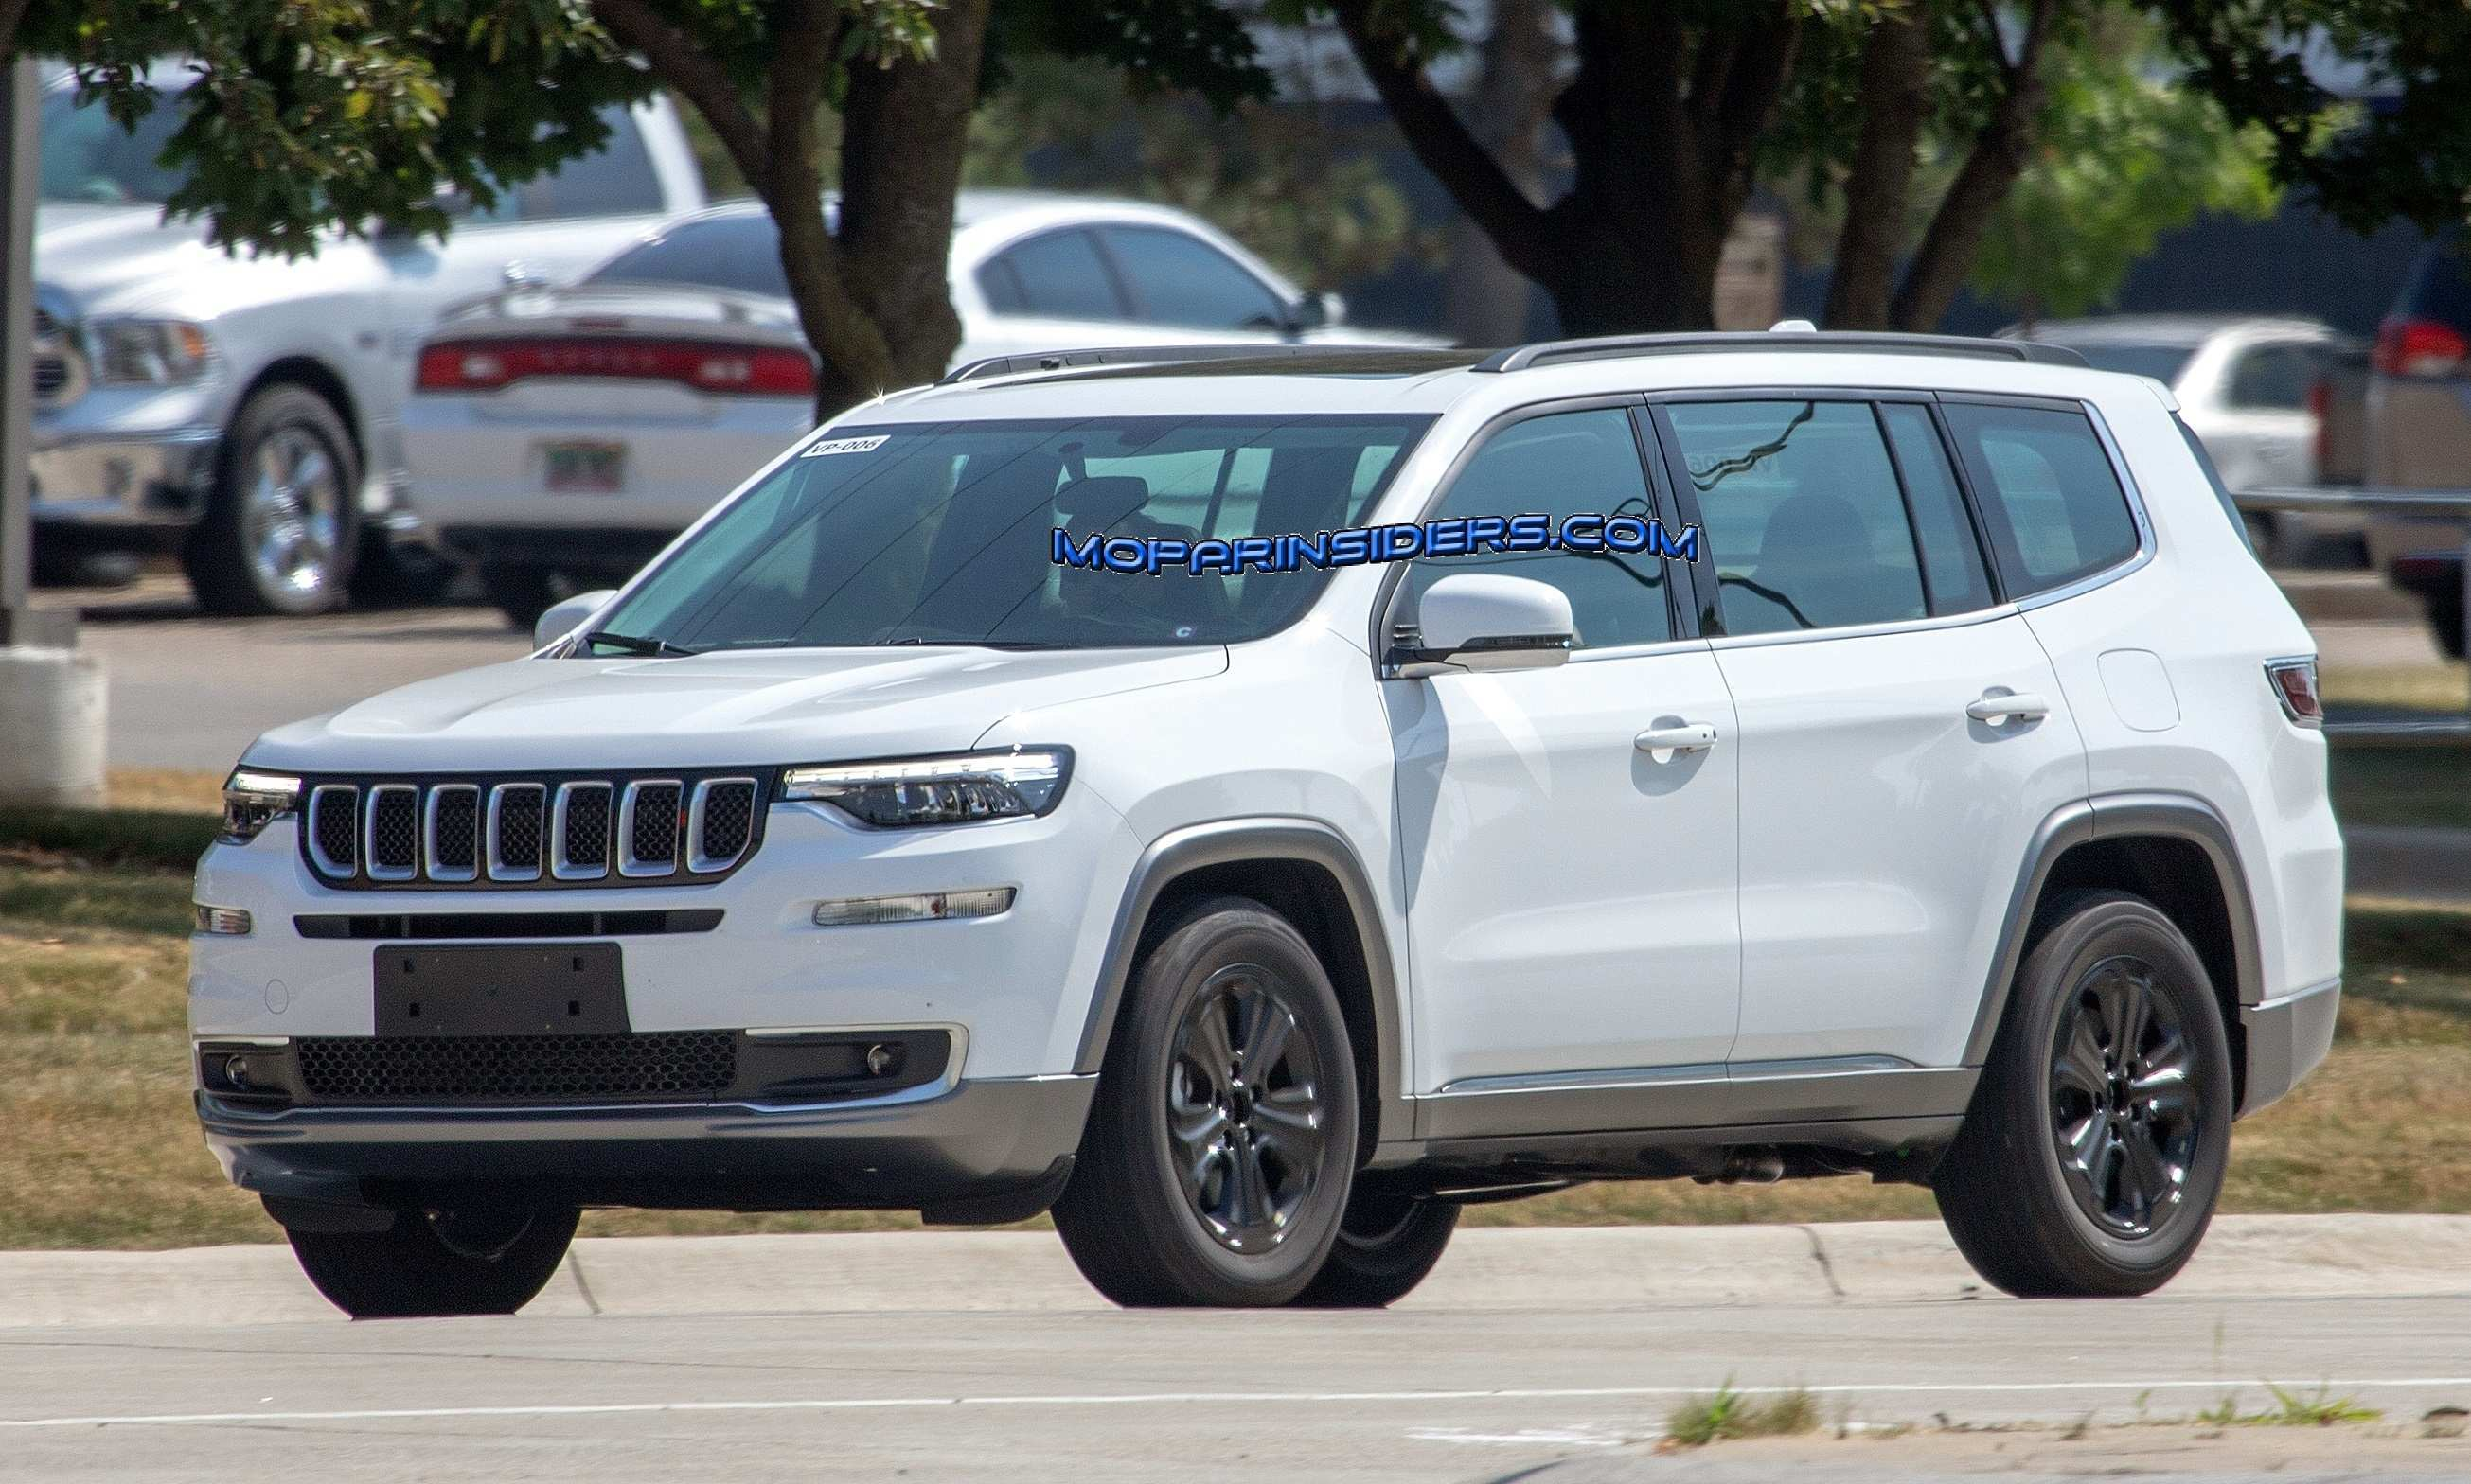 64 Gallery of New Jeep Grand Commander 2019 Price Prices by New Jeep Grand Commander 2019 Price